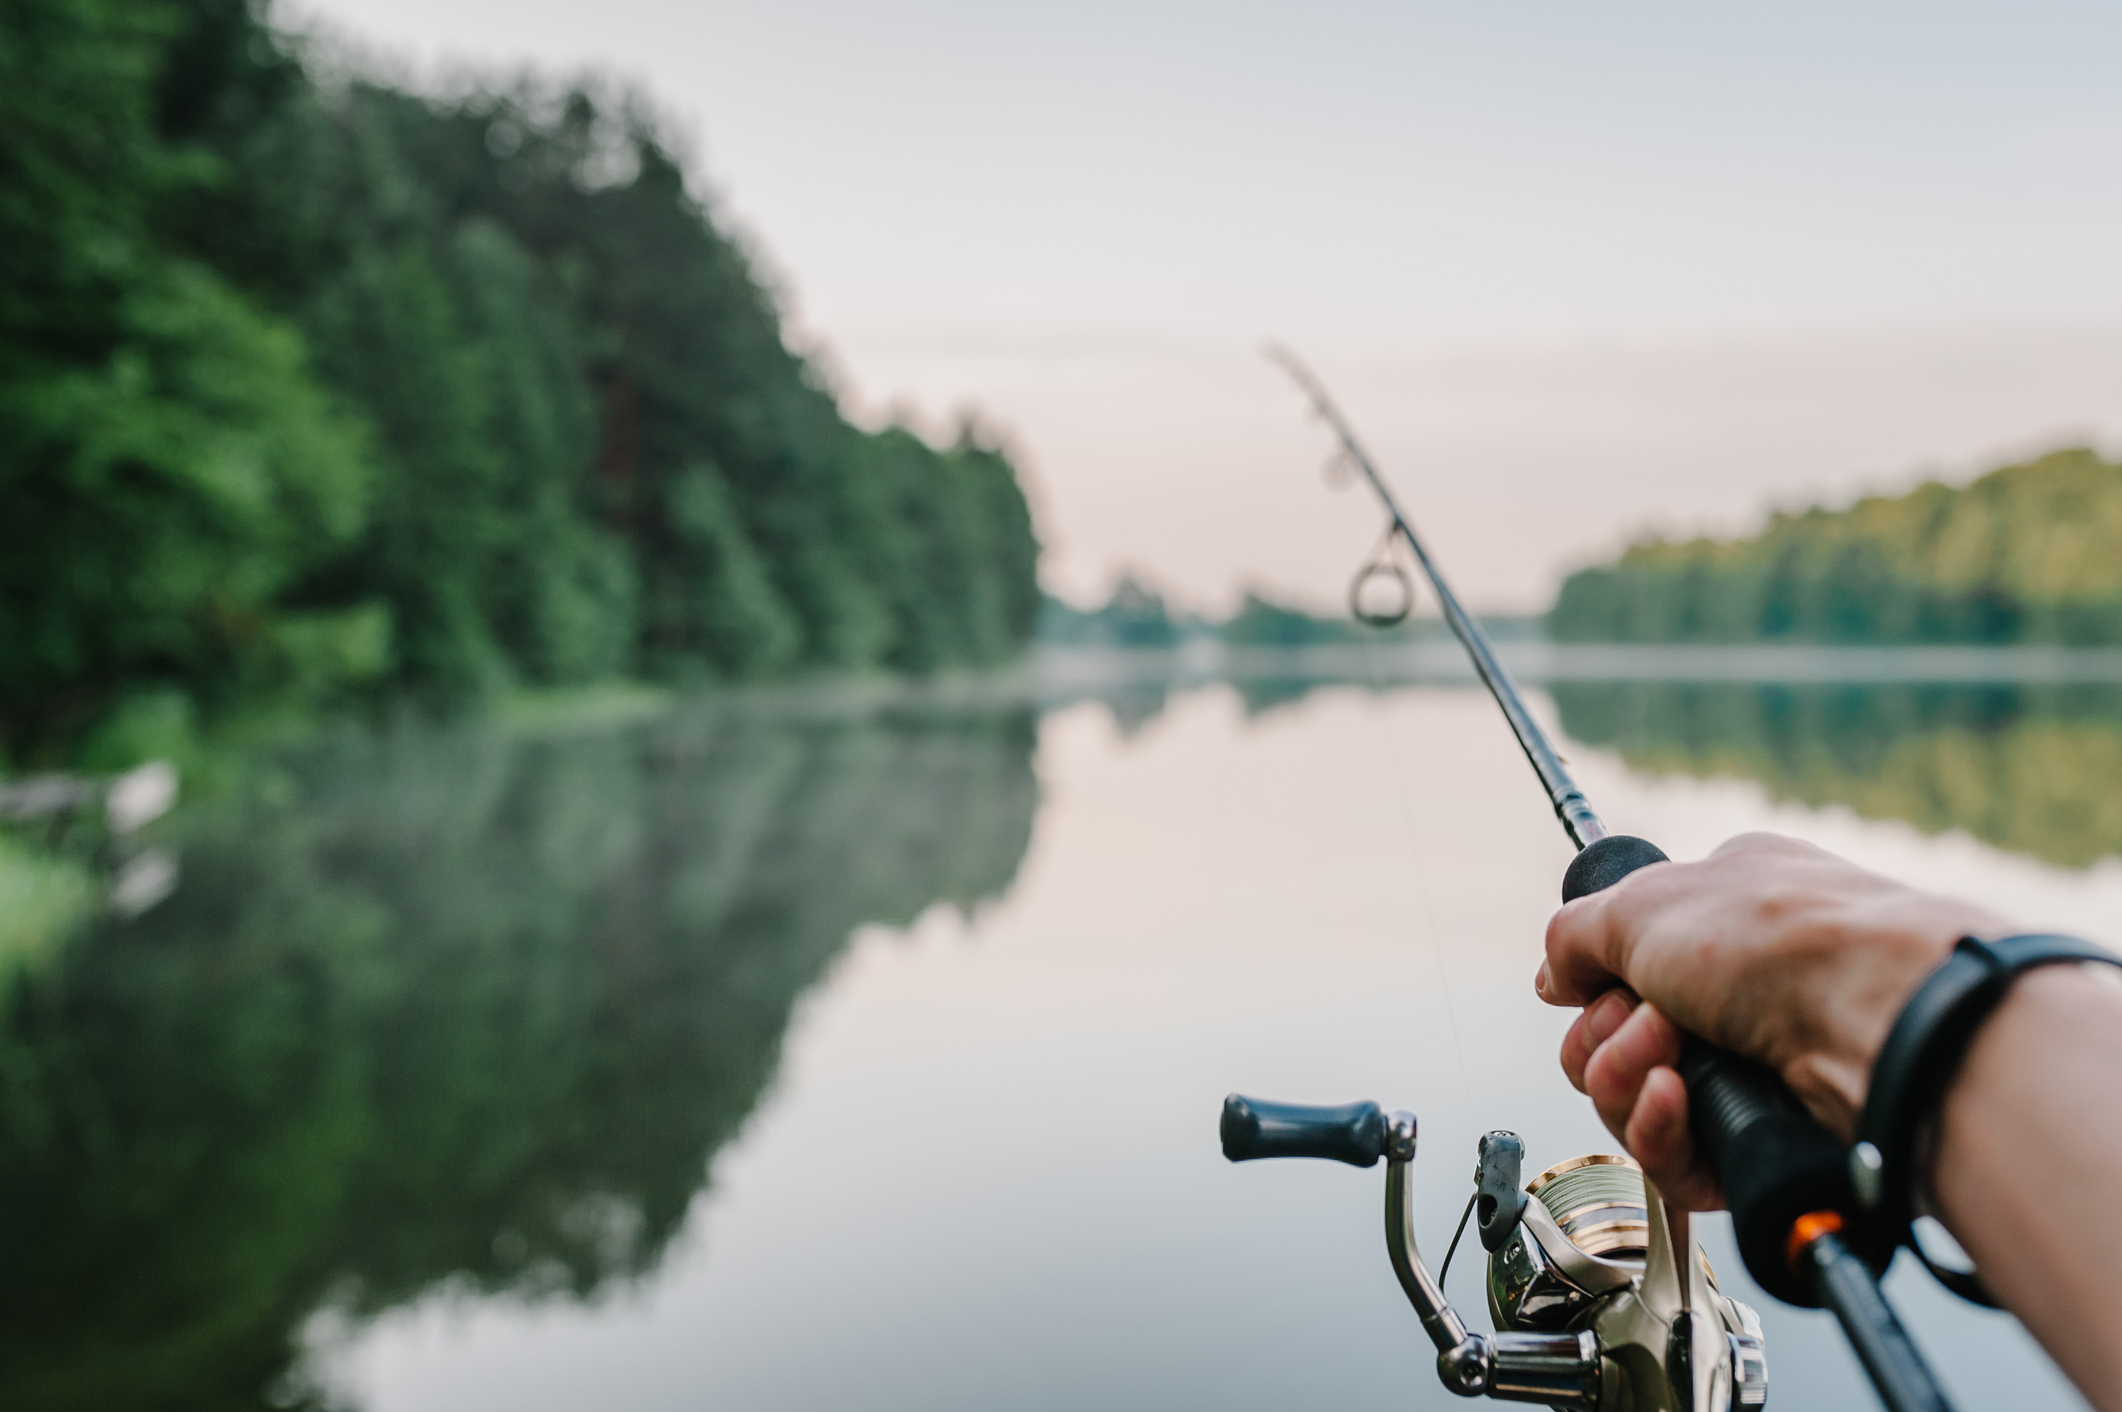 Fisherman with rod, spinning reel on the river bank. Sunrise. Fishing for pike, perch, carp. Fog against the backdrop of lake. background Misty morning. wild nature. The concept of a rural getaway.